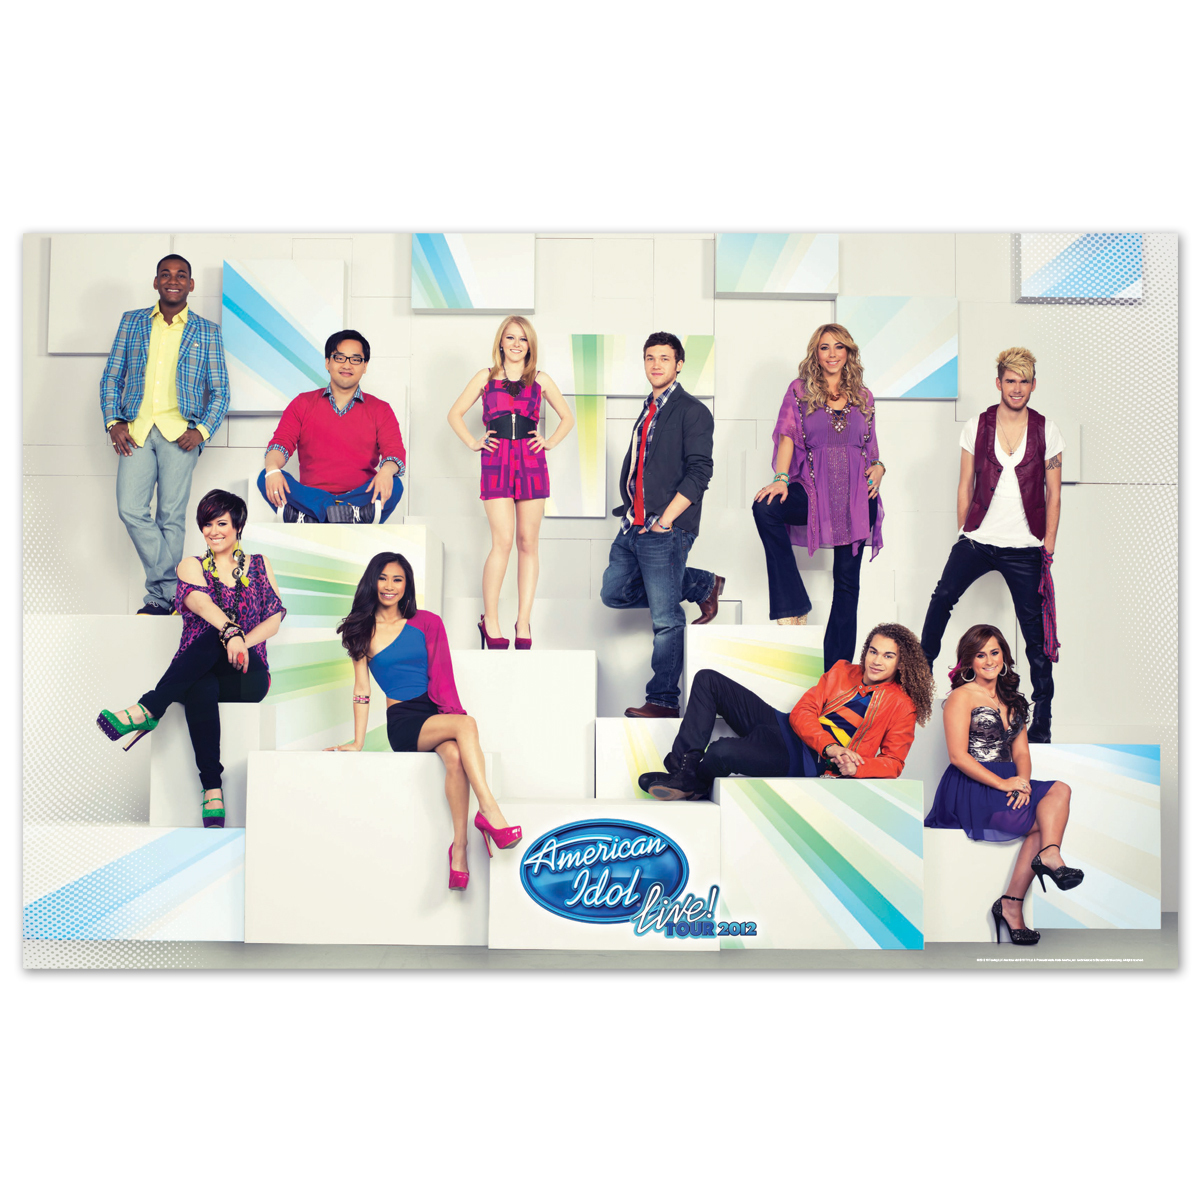 American Idol Live 2012 Wall Poster